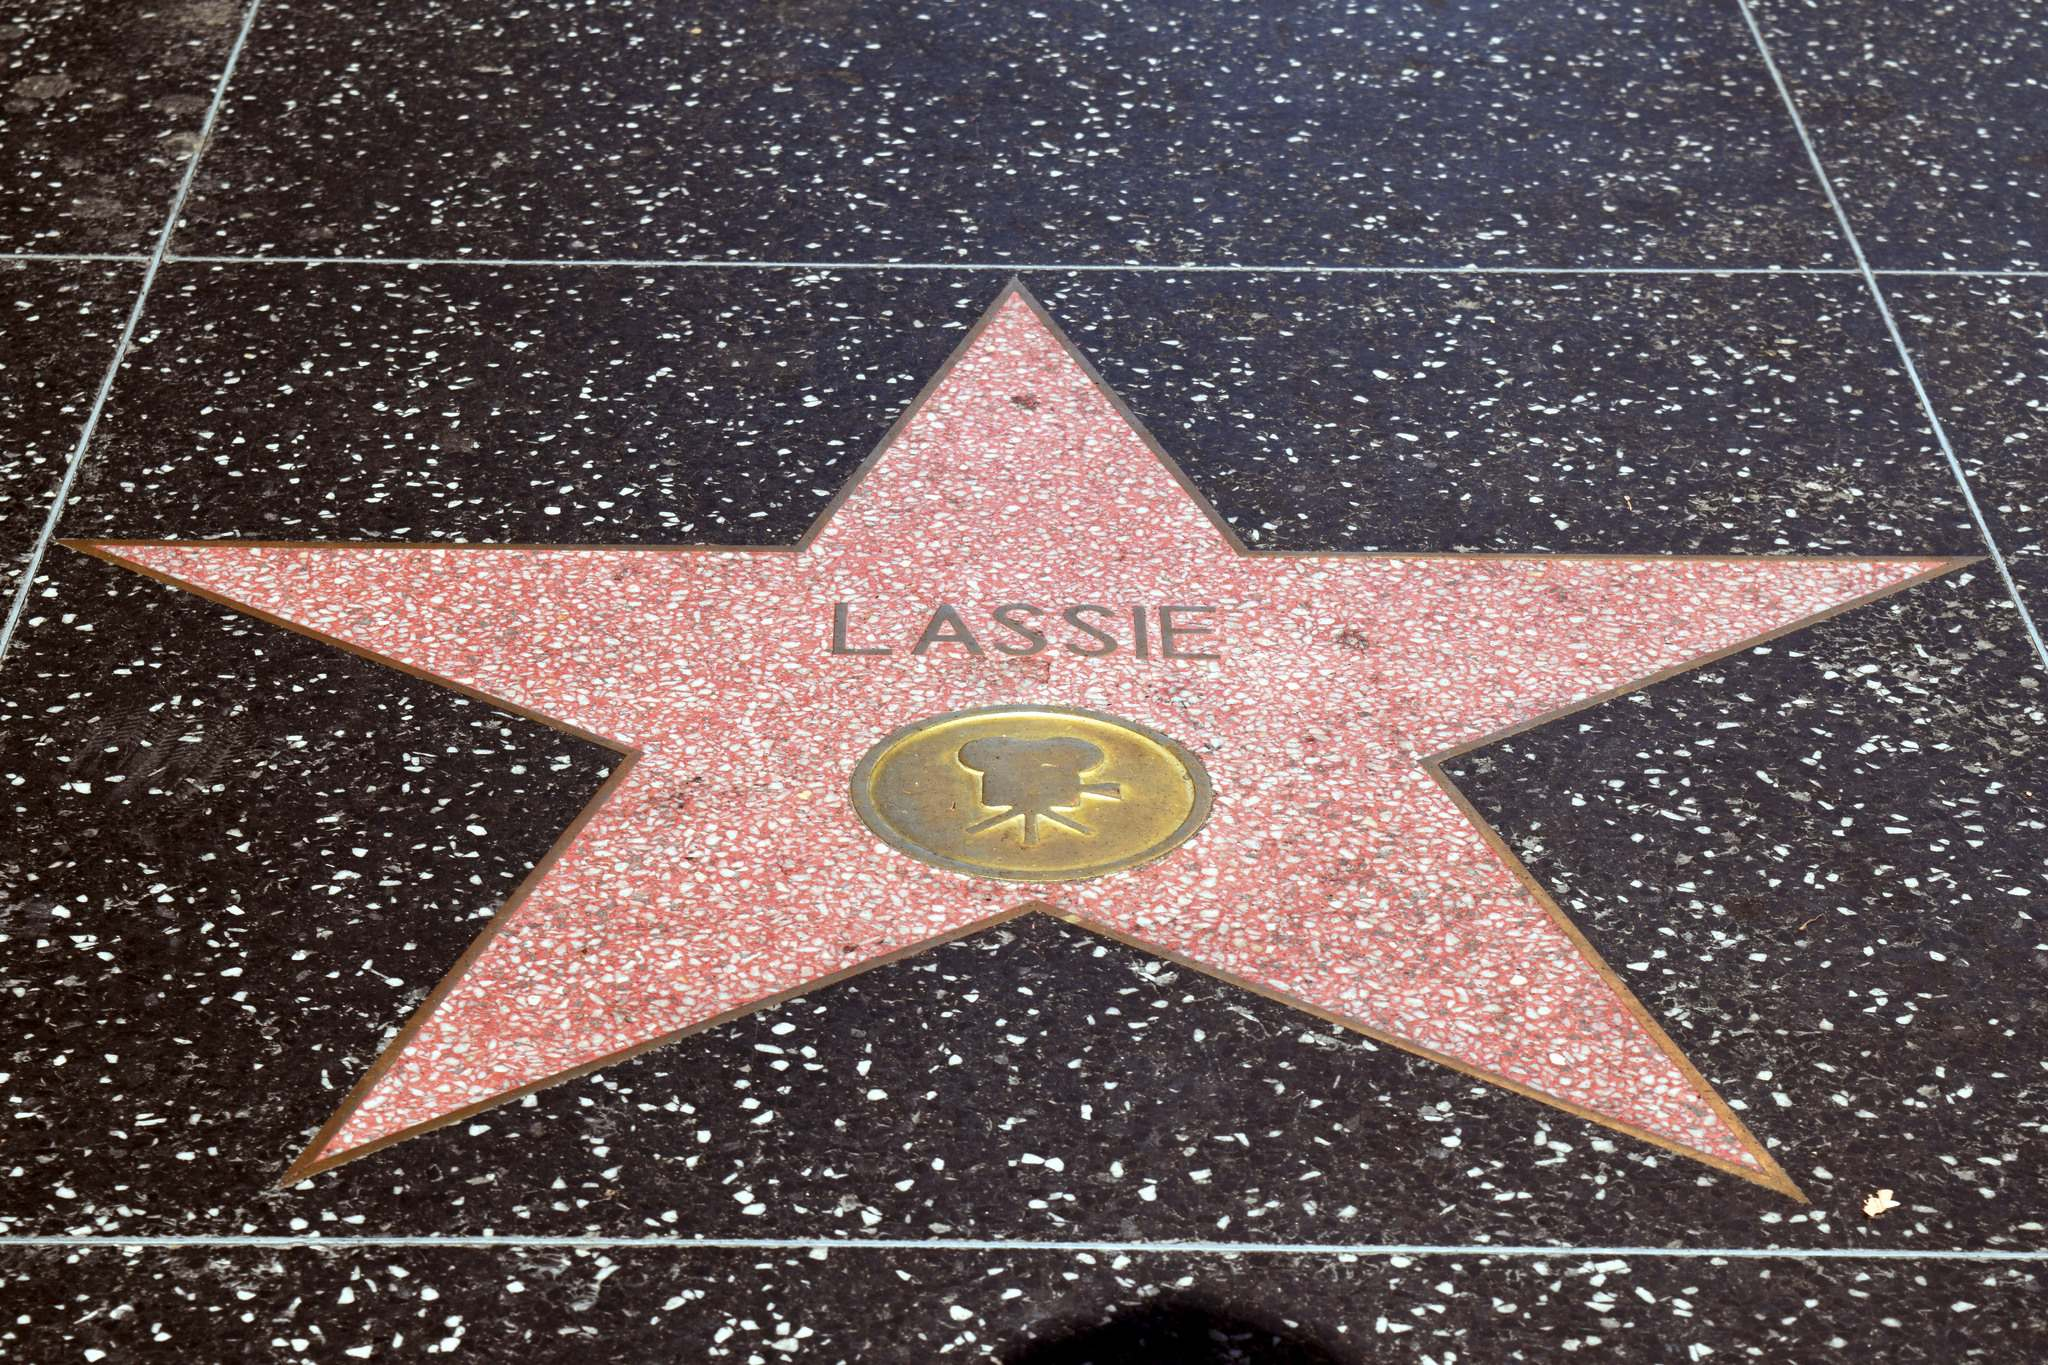 Canine movie and TV actress Lassie's star on the Hollywood Walk of Fame.</p>